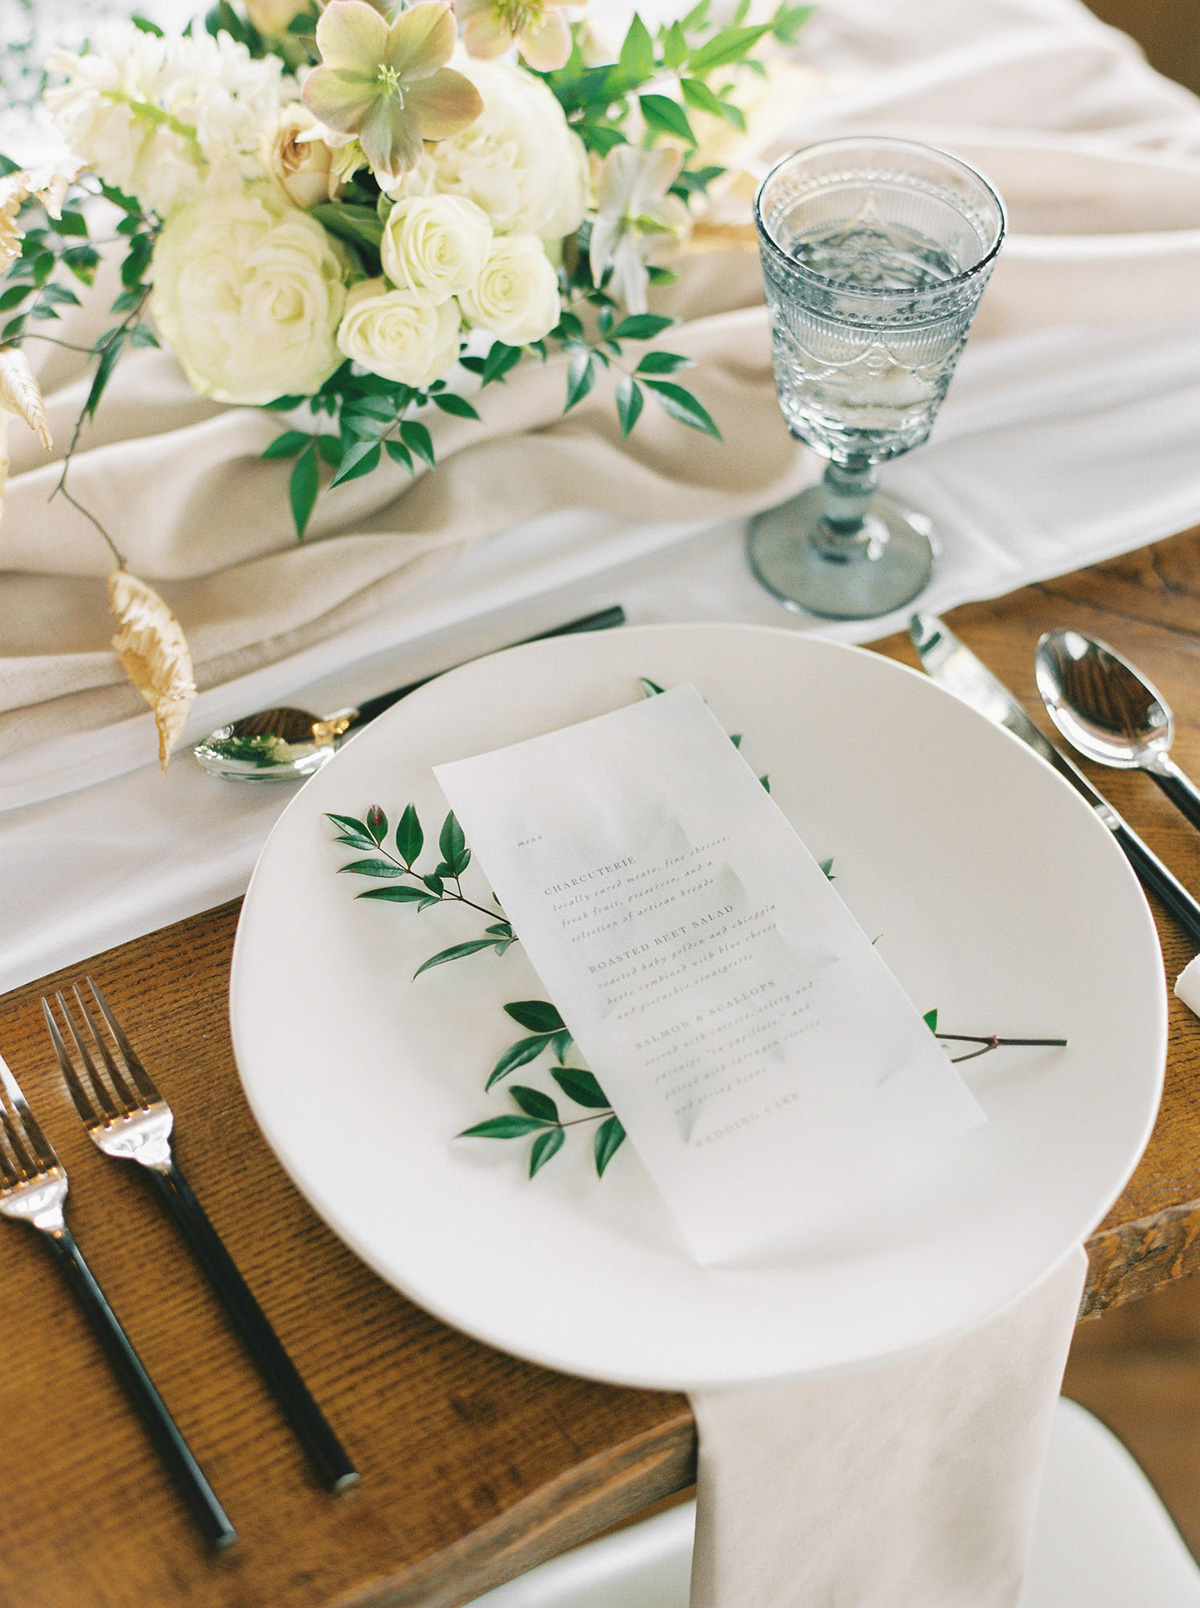 will-reid-photo-vineyard-bride-swish-list-kurtz-orchards-market-niagara-on-the-lake-wedding-editorial-3.jpg